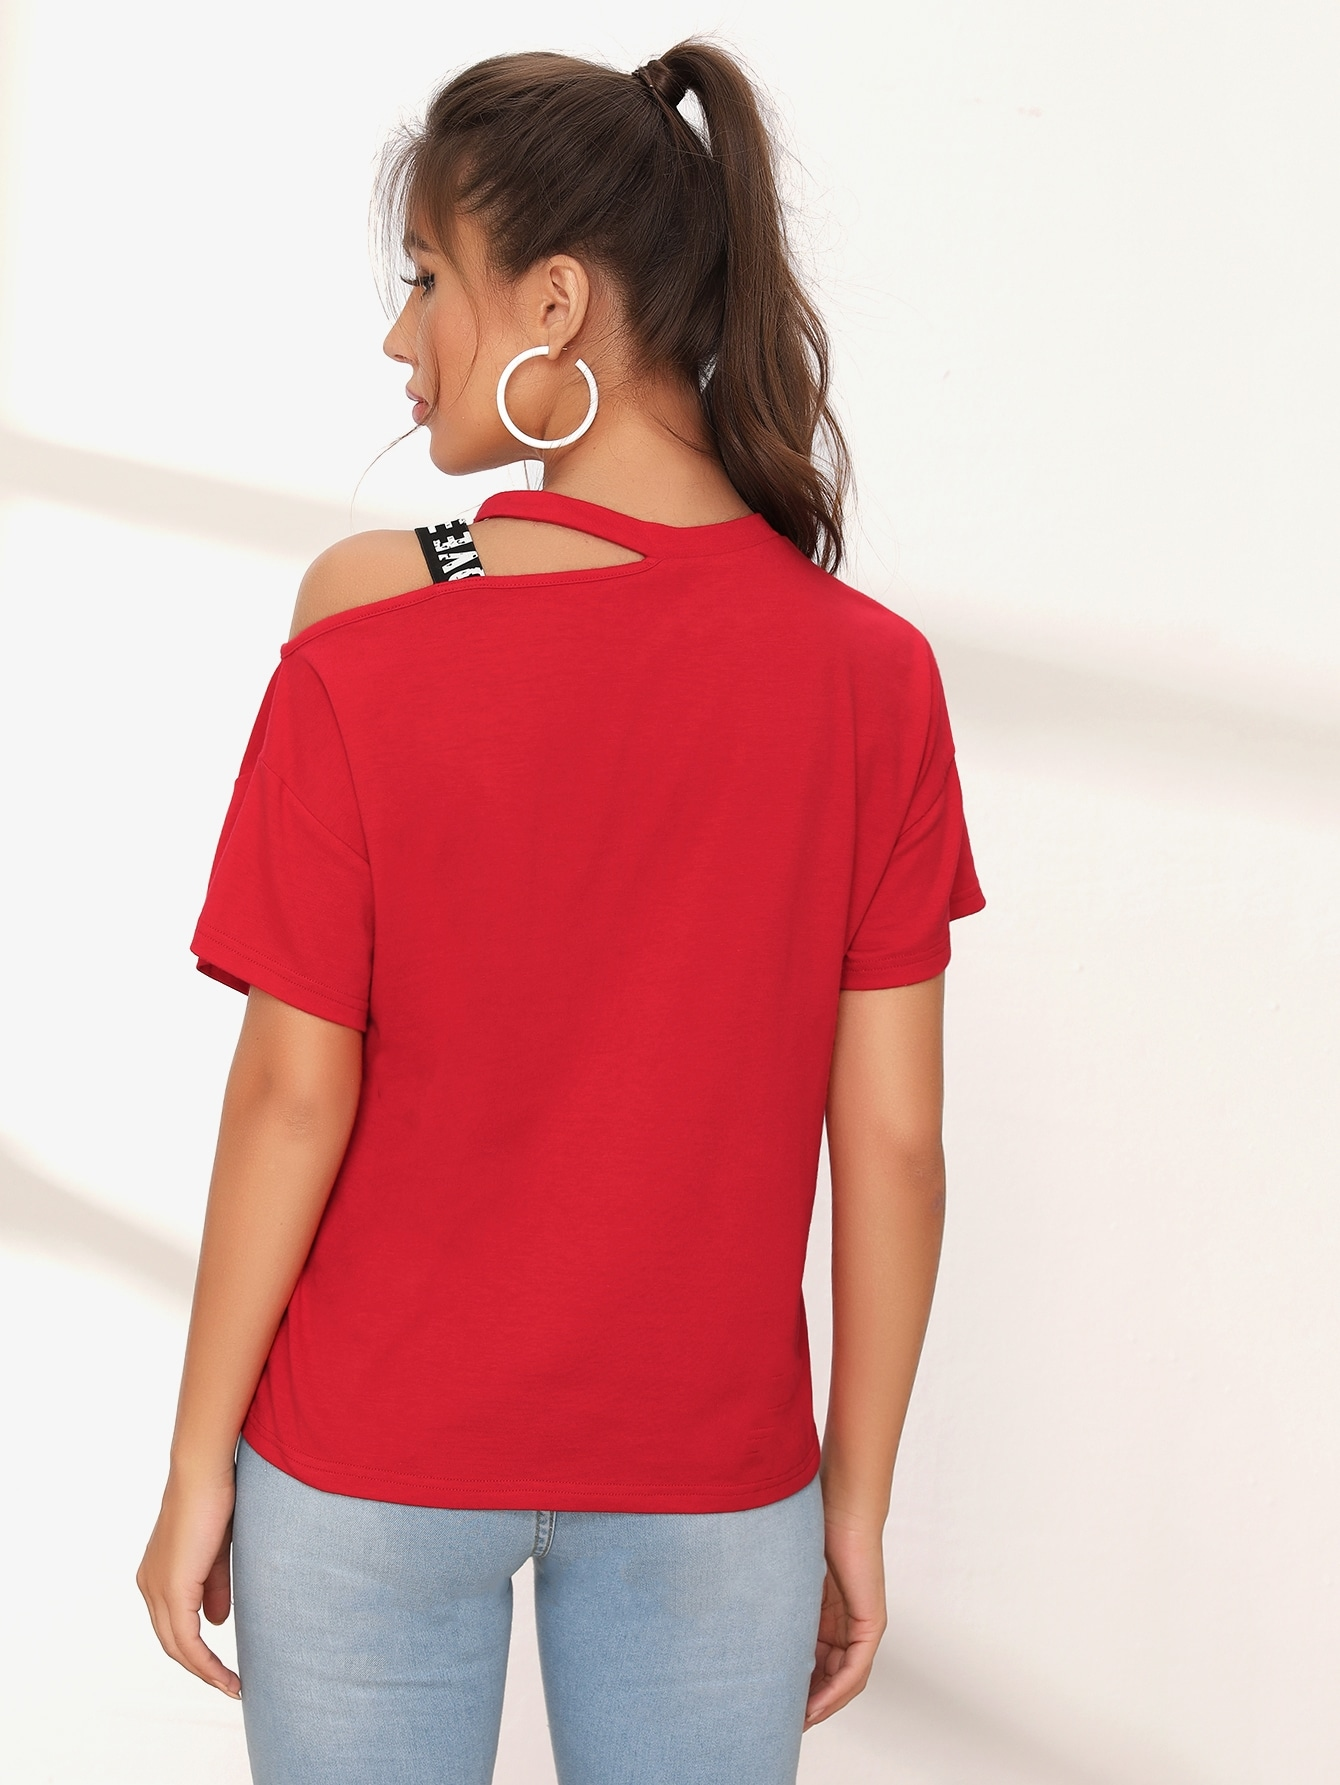 Asymmetrical Neck Slogan Print Letter Tape Tee